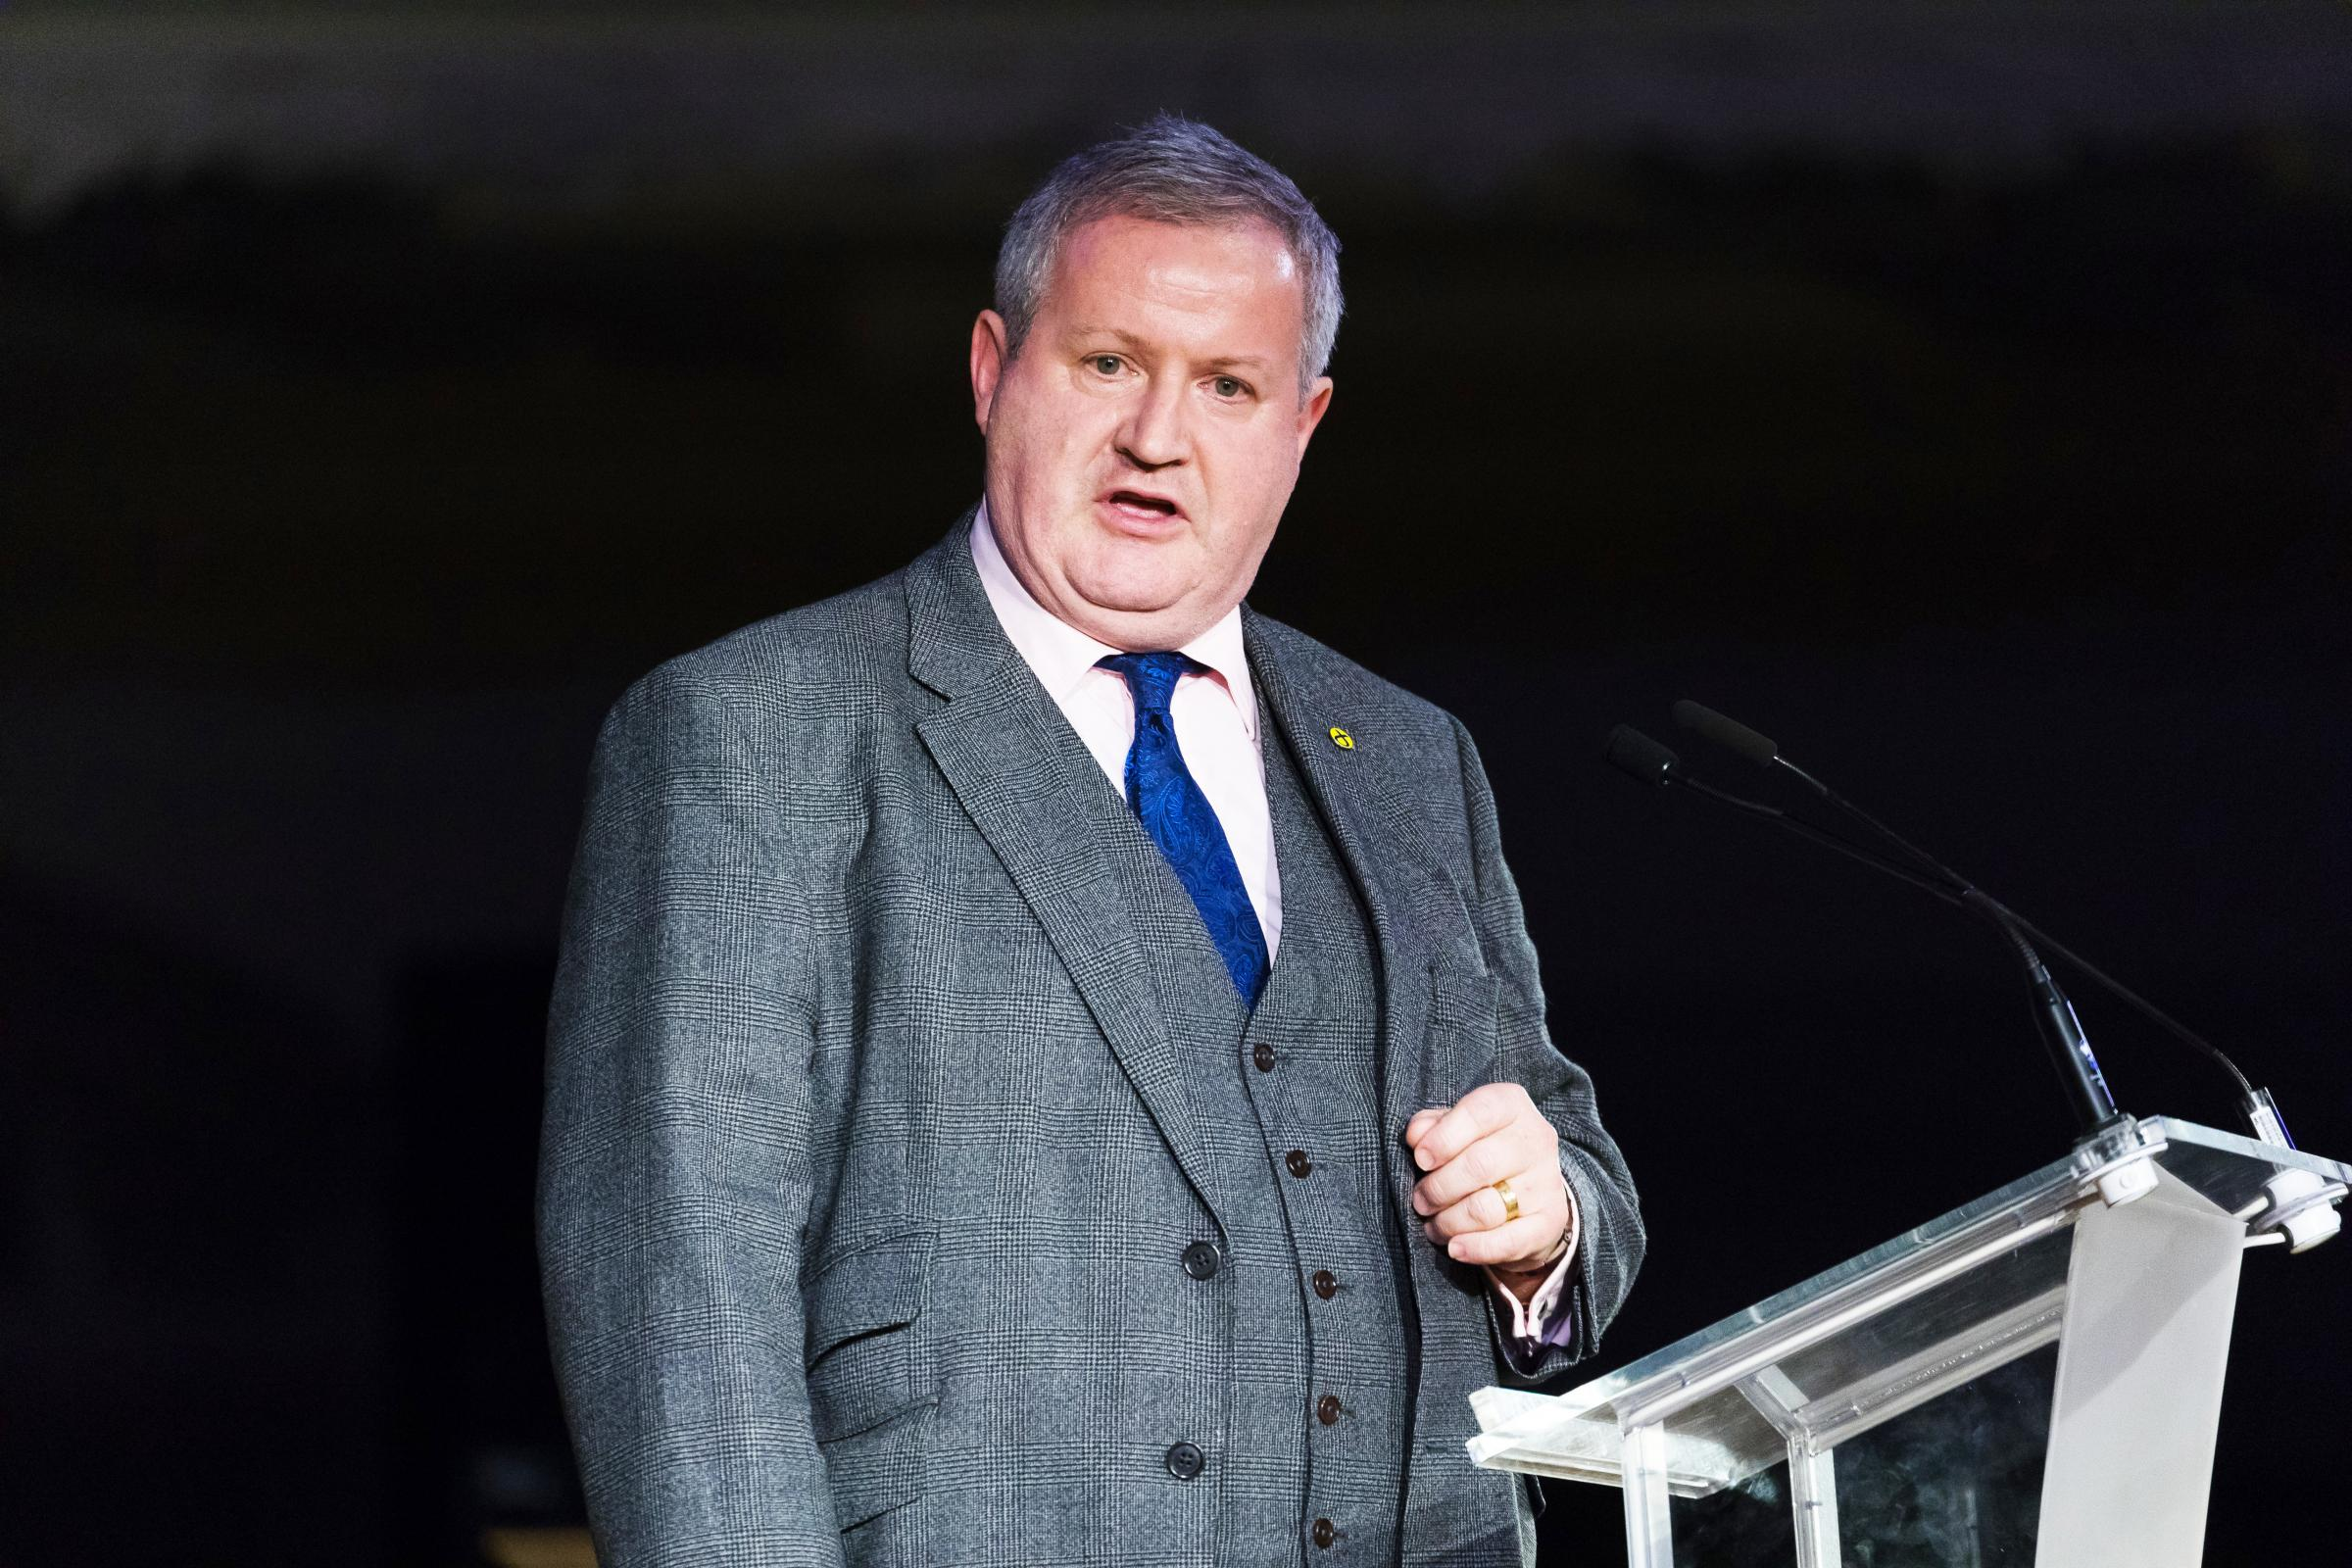 Ian Blackford has written to the seven Scottish Labour MPs urging them to rule out supporting the deal